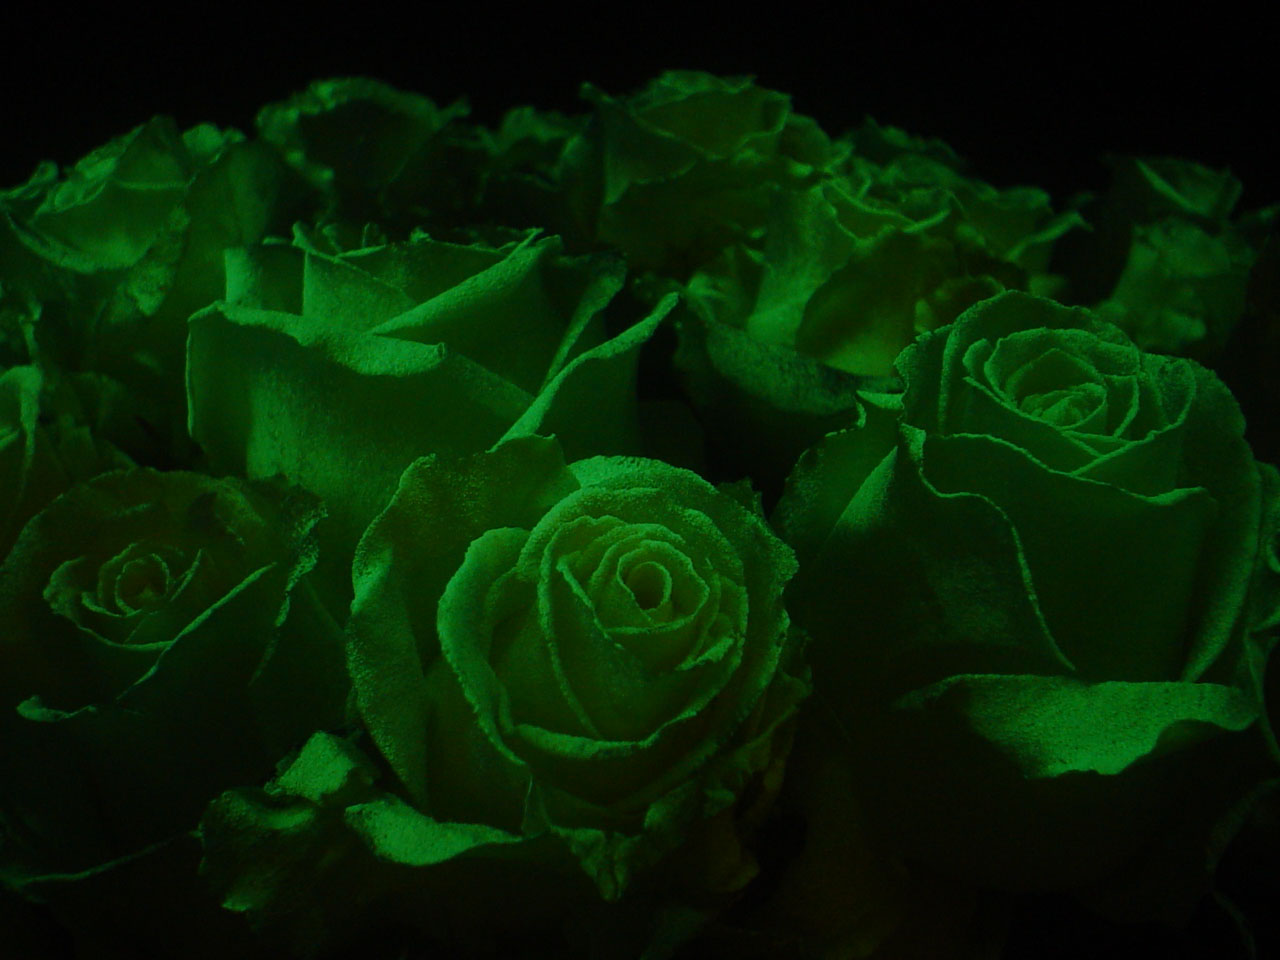 glow in the dark rose close up, Next Generation B.V.'s international patent